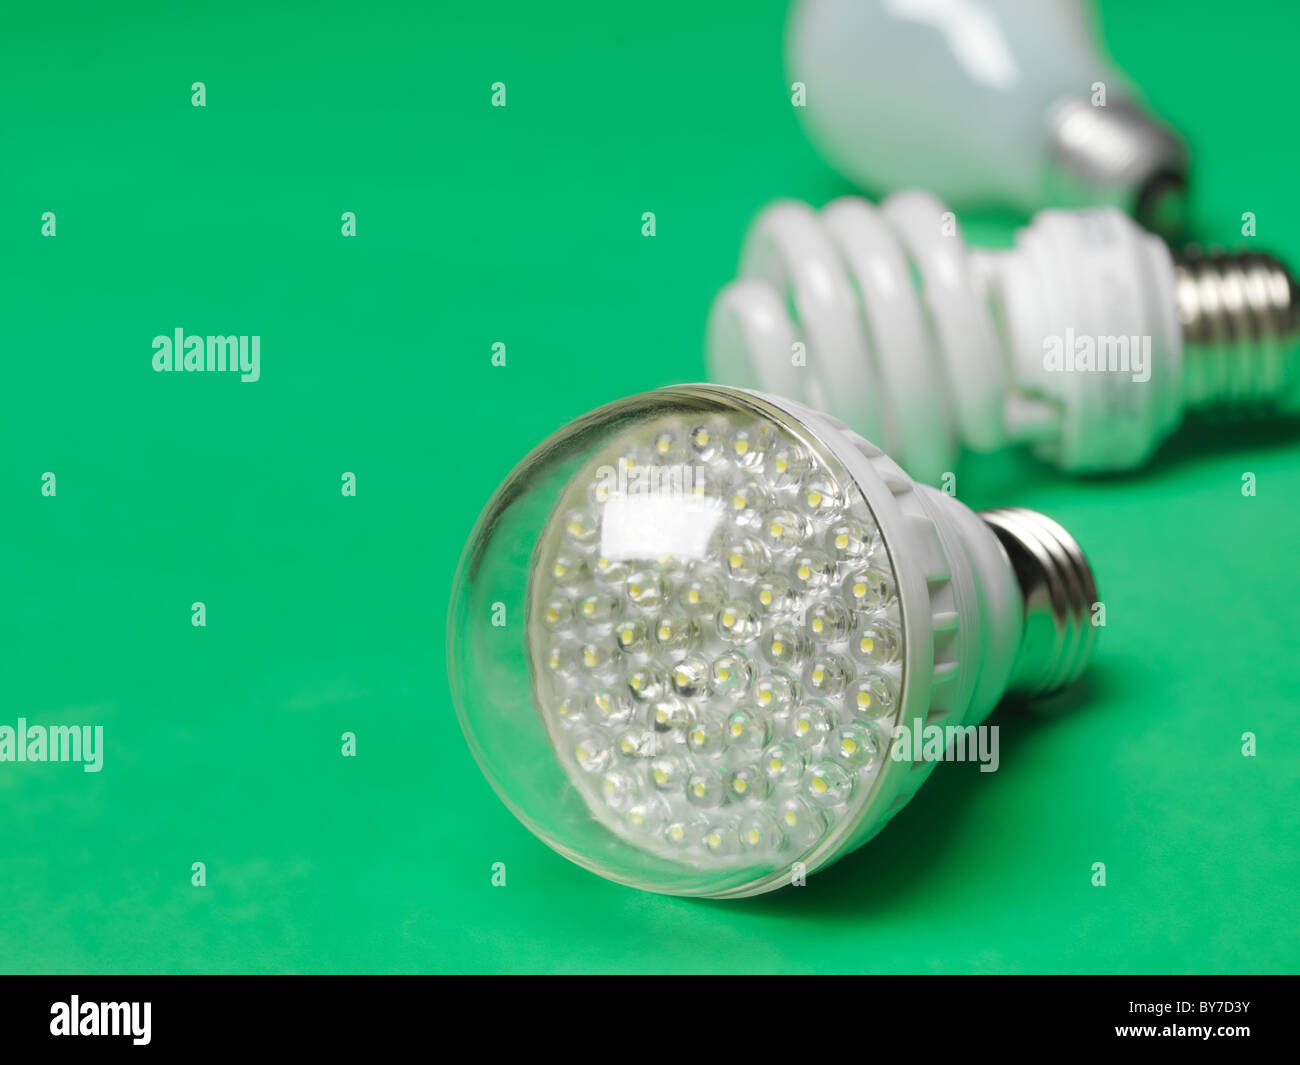 LED light bulb with fluorescent and incandescent bulbs in the background, showing three generations of light bulbs - Stock Image